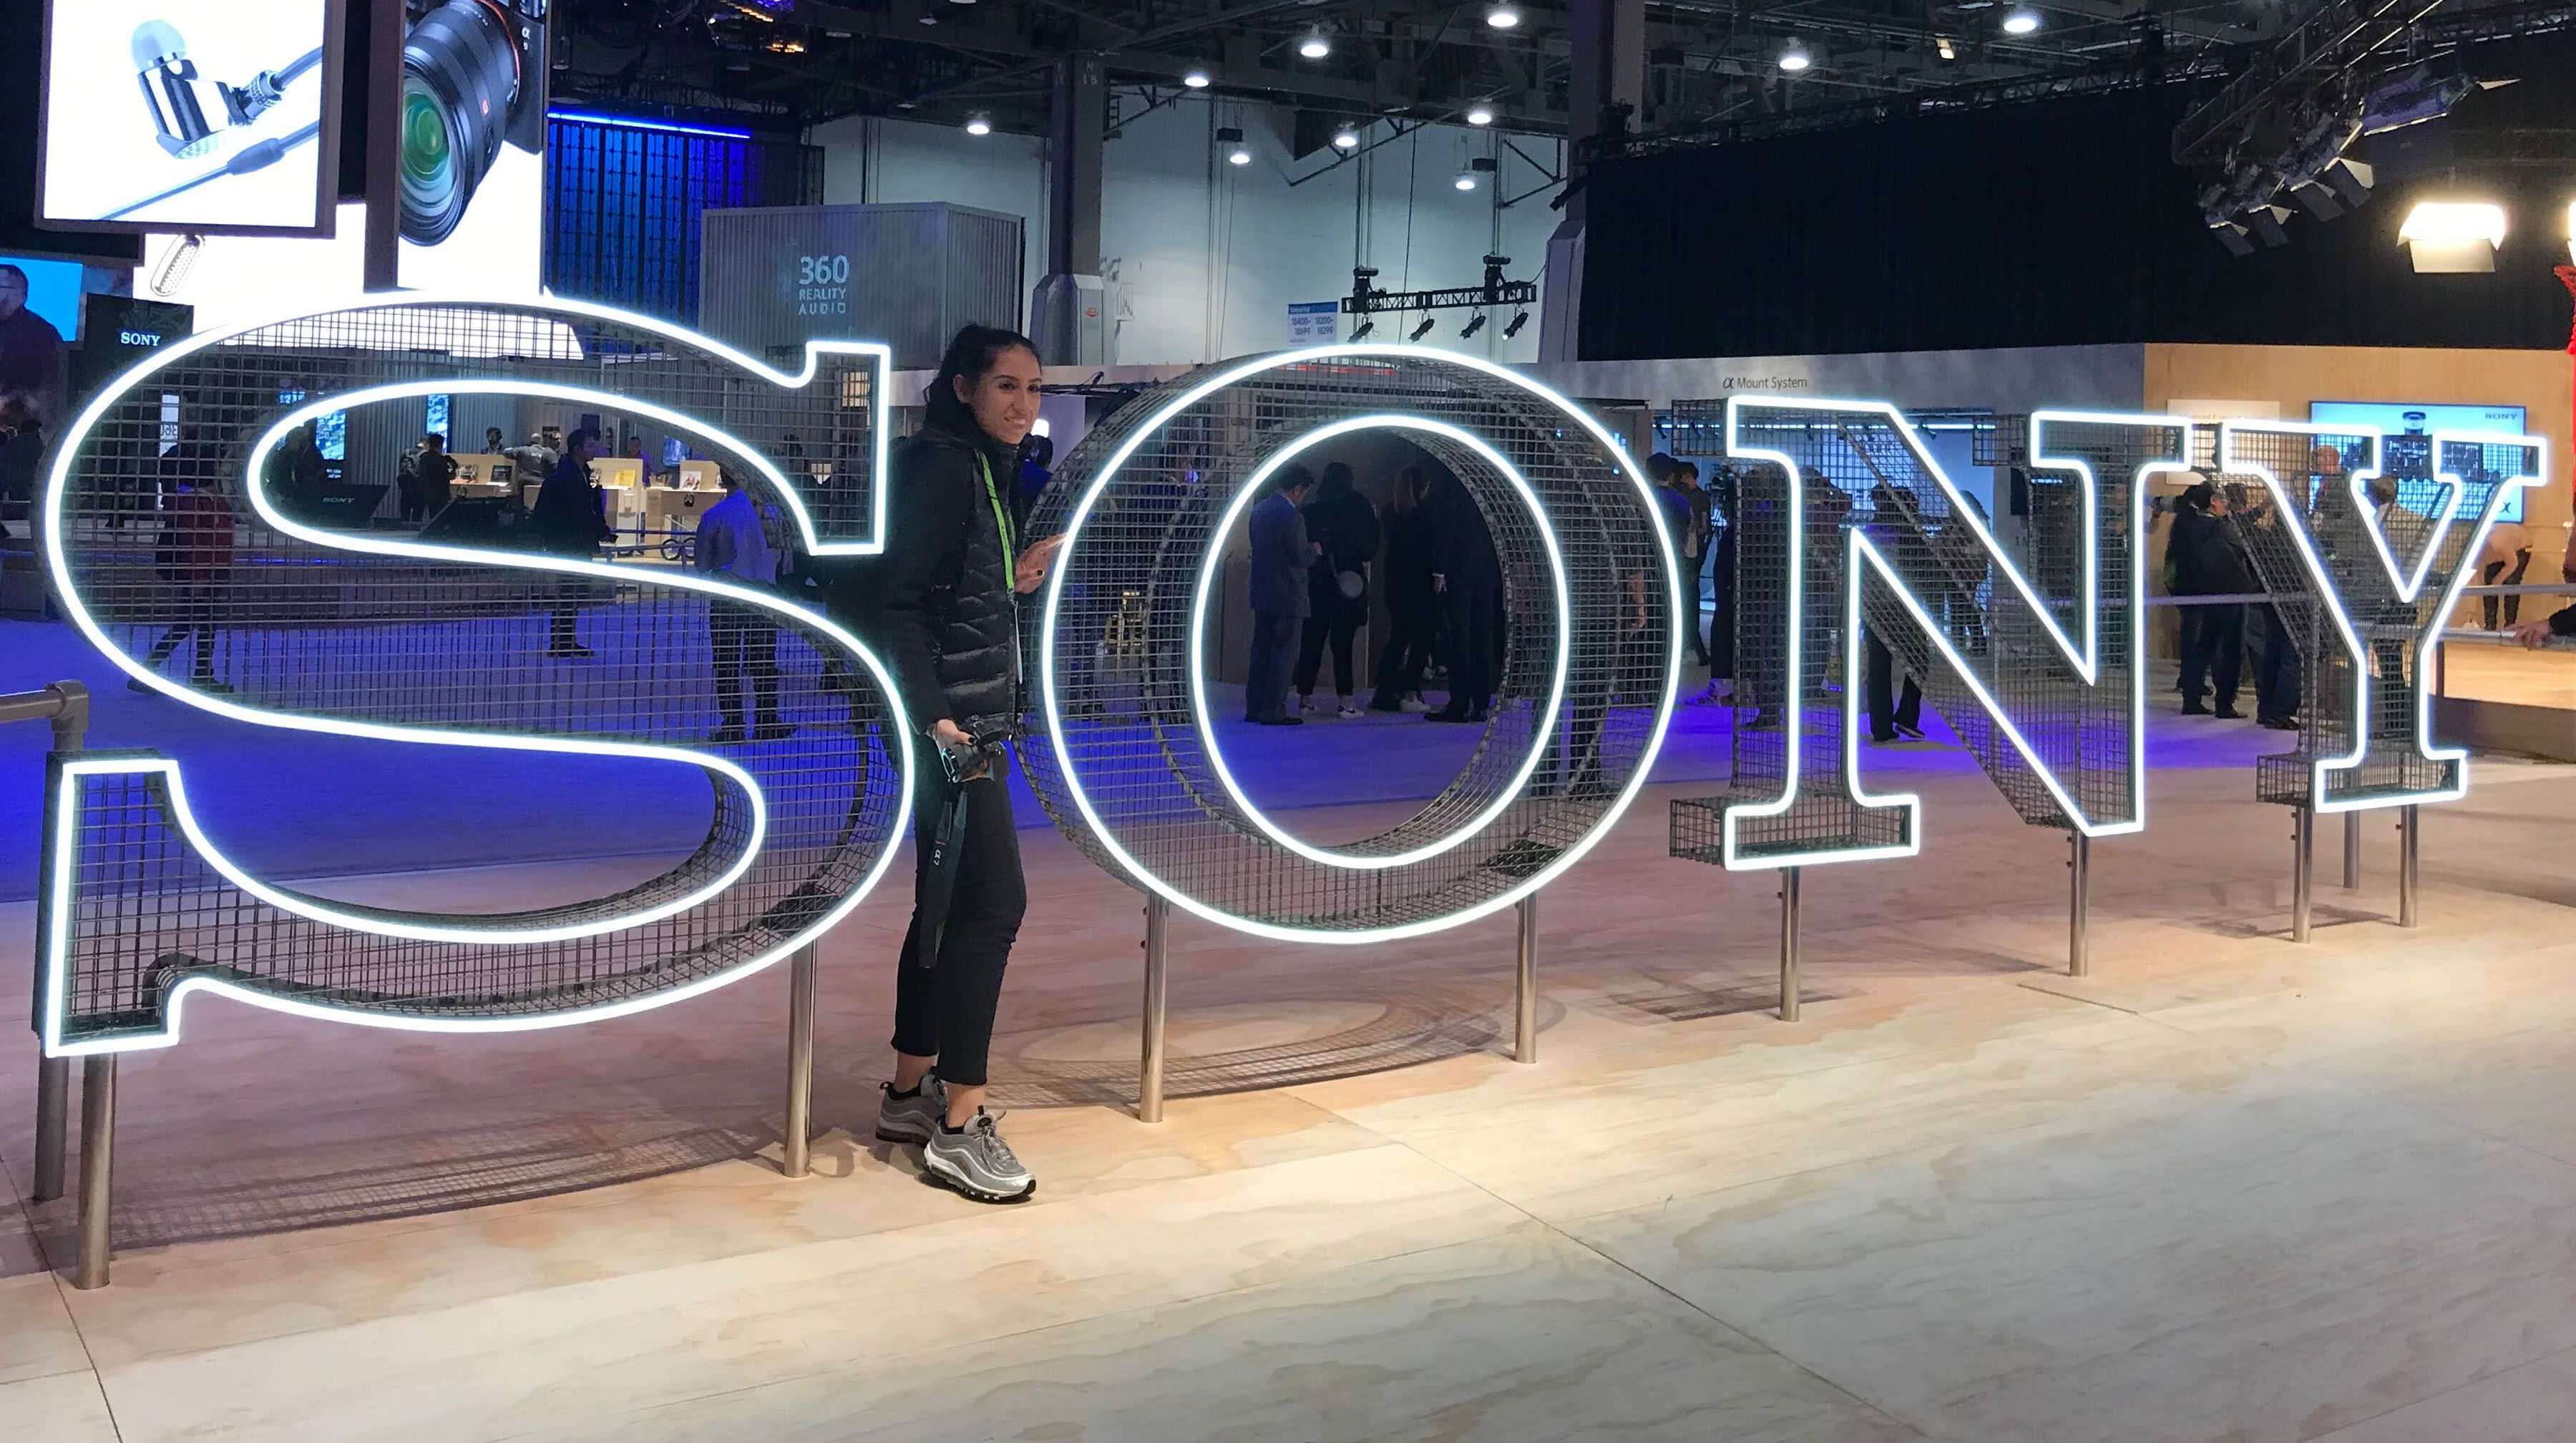 Sony bulks up anime business in China - Nikkei Asian Review